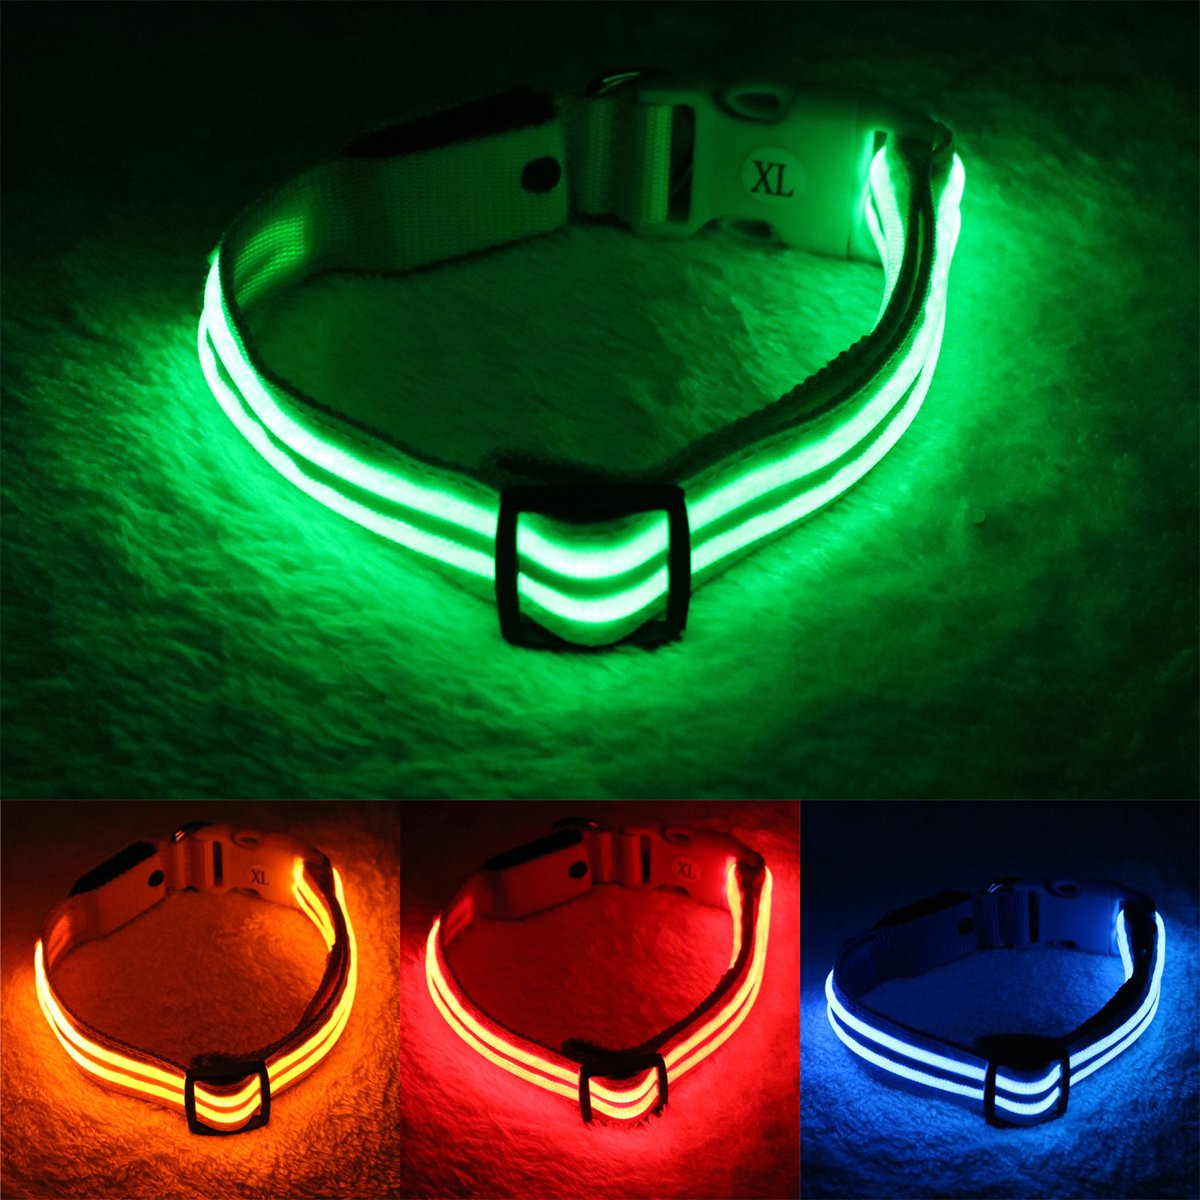 Neon Green Medium(13-17\ Neon Green Medium(13-17\ csspet Green LED Dog Collar Lighted, USB Rechargeable, Keep Your Dog Visible, Safe & Glowing at Night